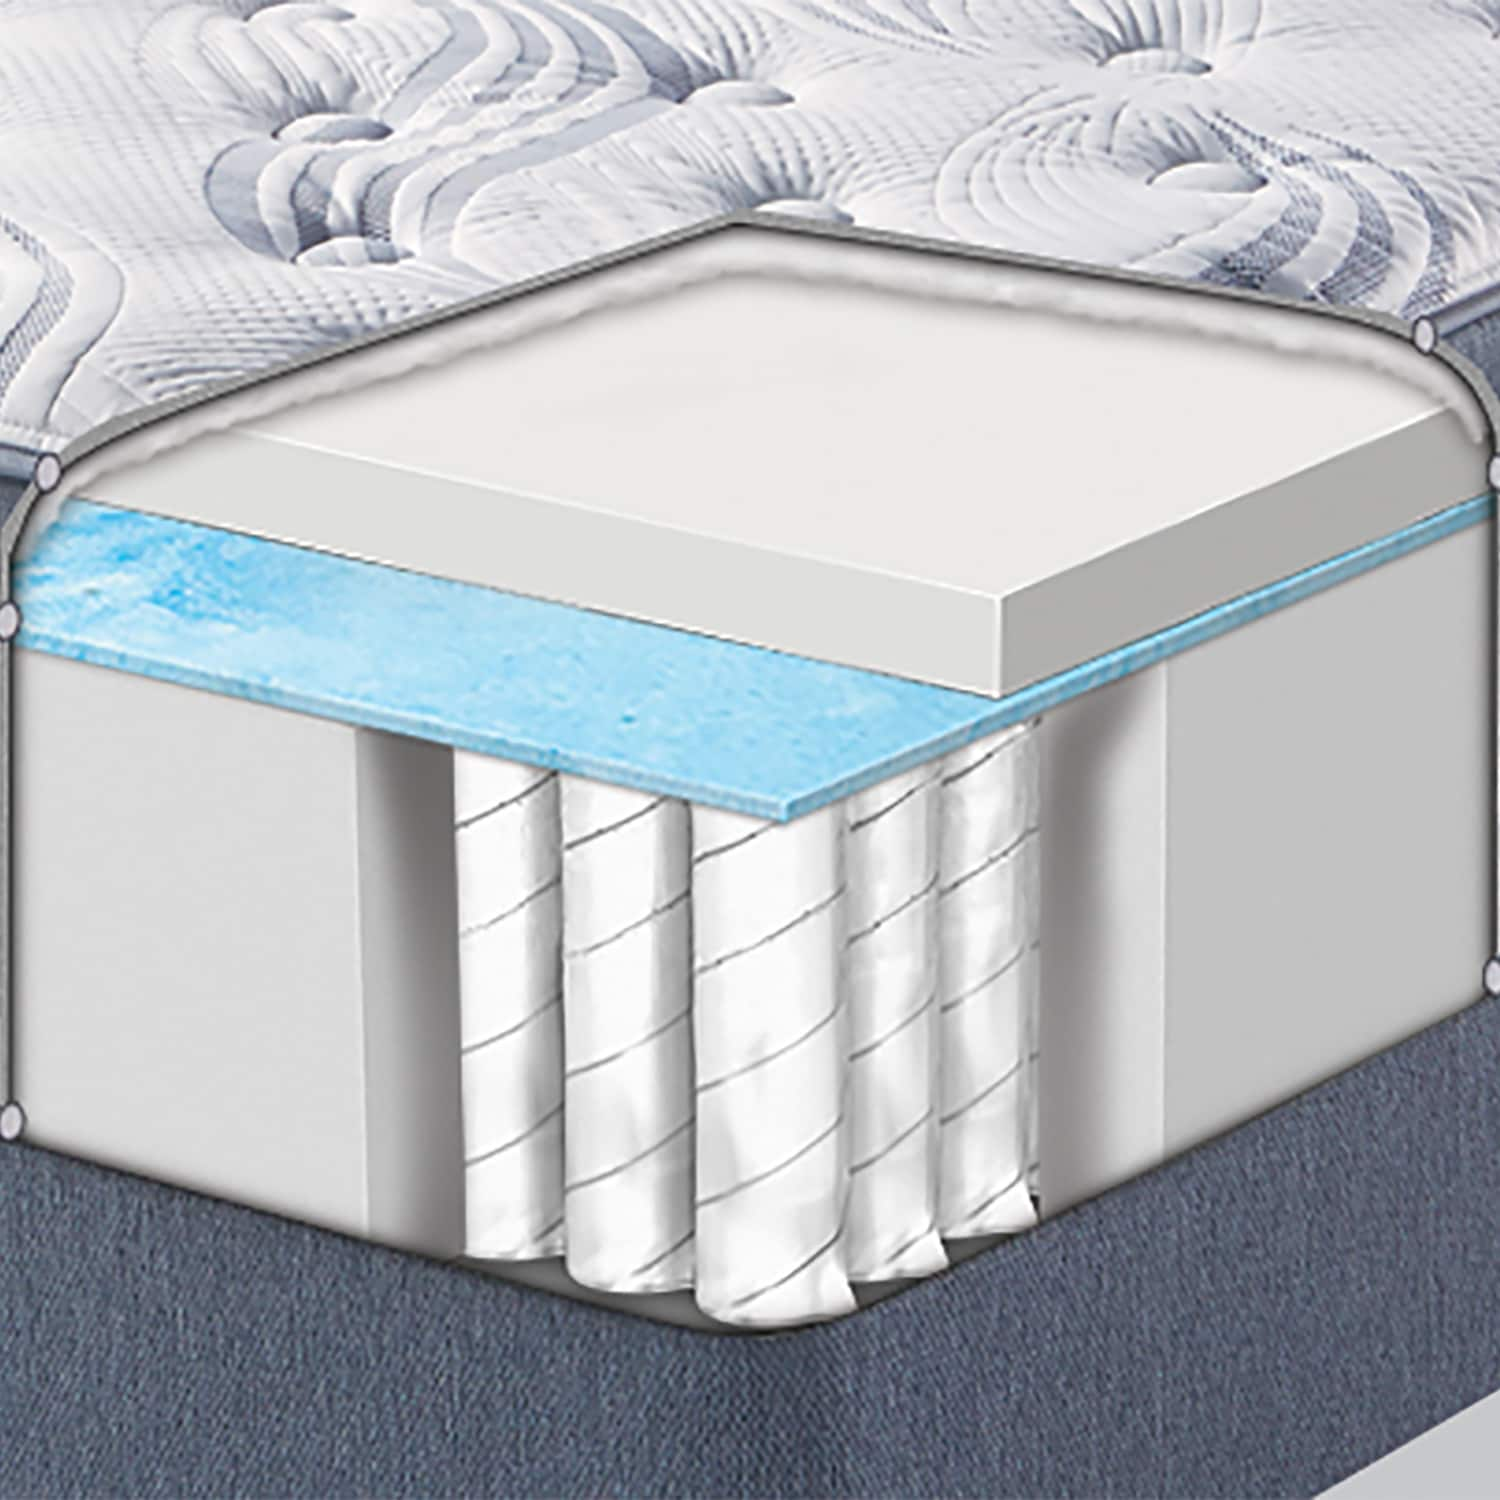 up cutting gel head pillow set cool emerald support create foams pivot elite a sleeper adjustable and mattress xd super serta unique memory foam perfect spsel action oaks comfort edge including pillowsoft of with eastport combination top